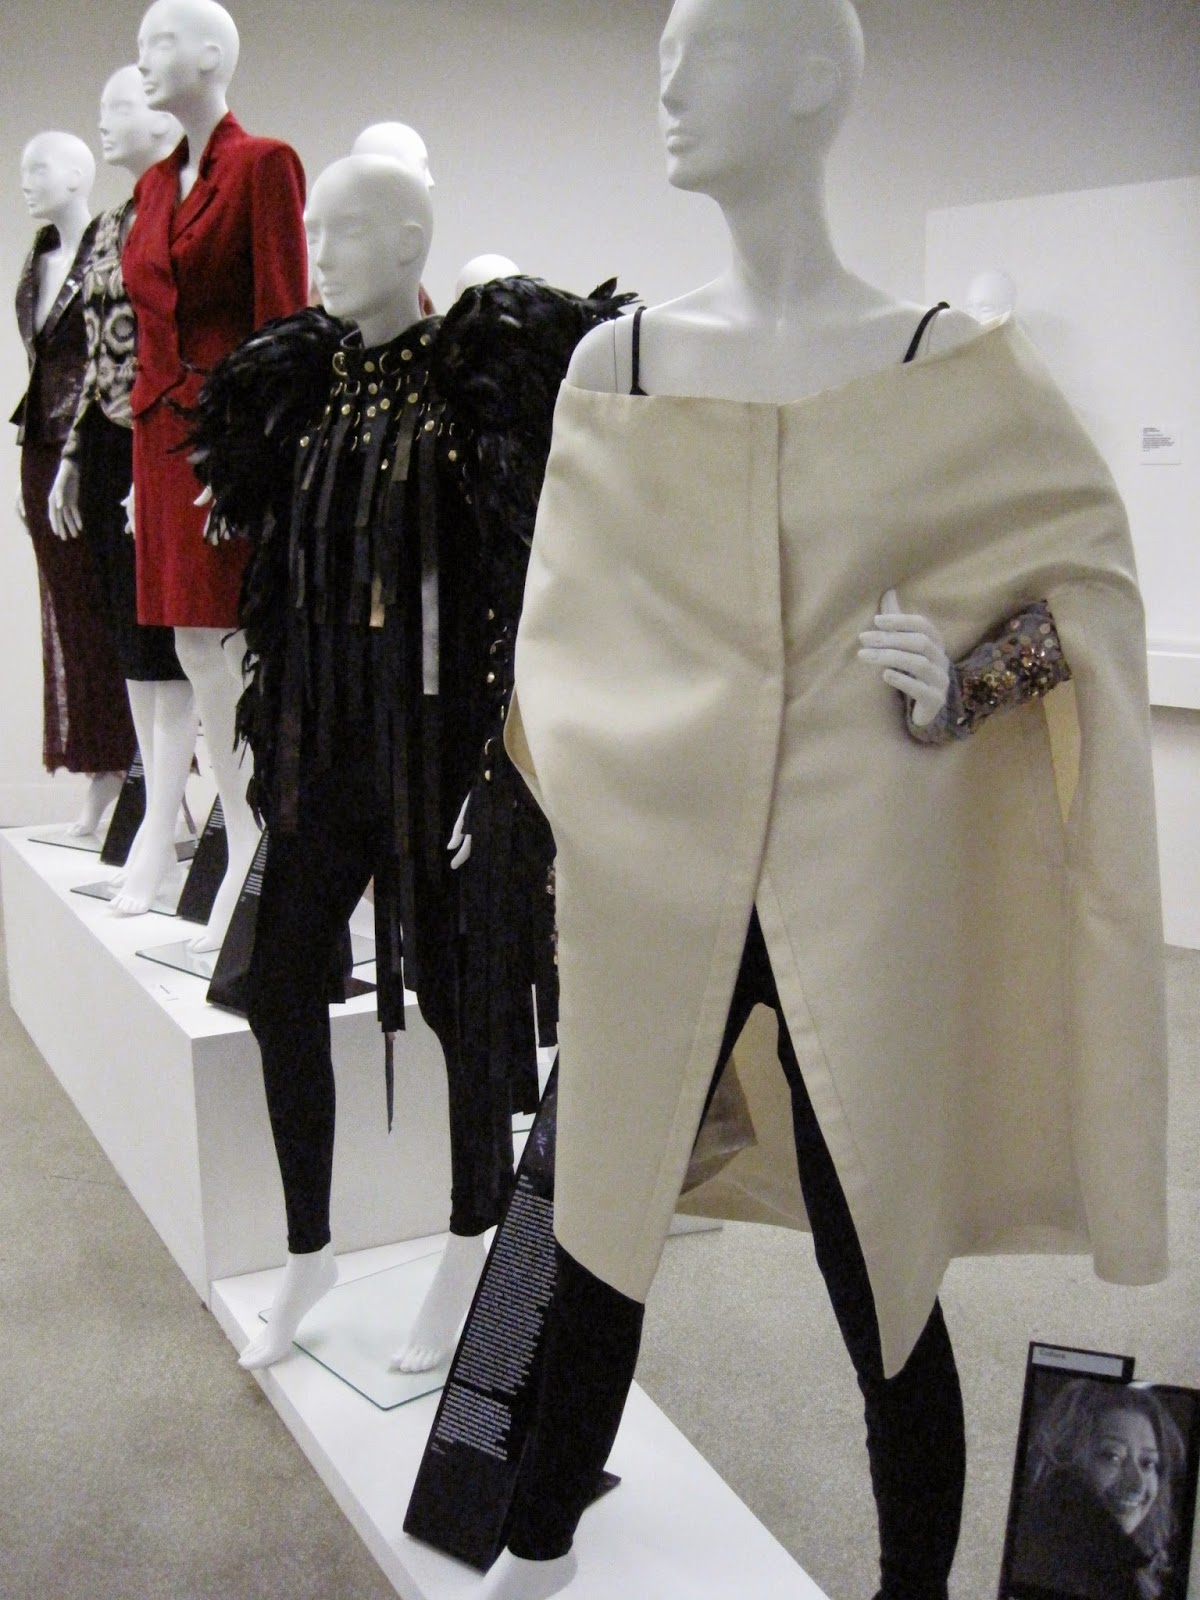 Women Fashion Power Exhibition At The Design Museum That